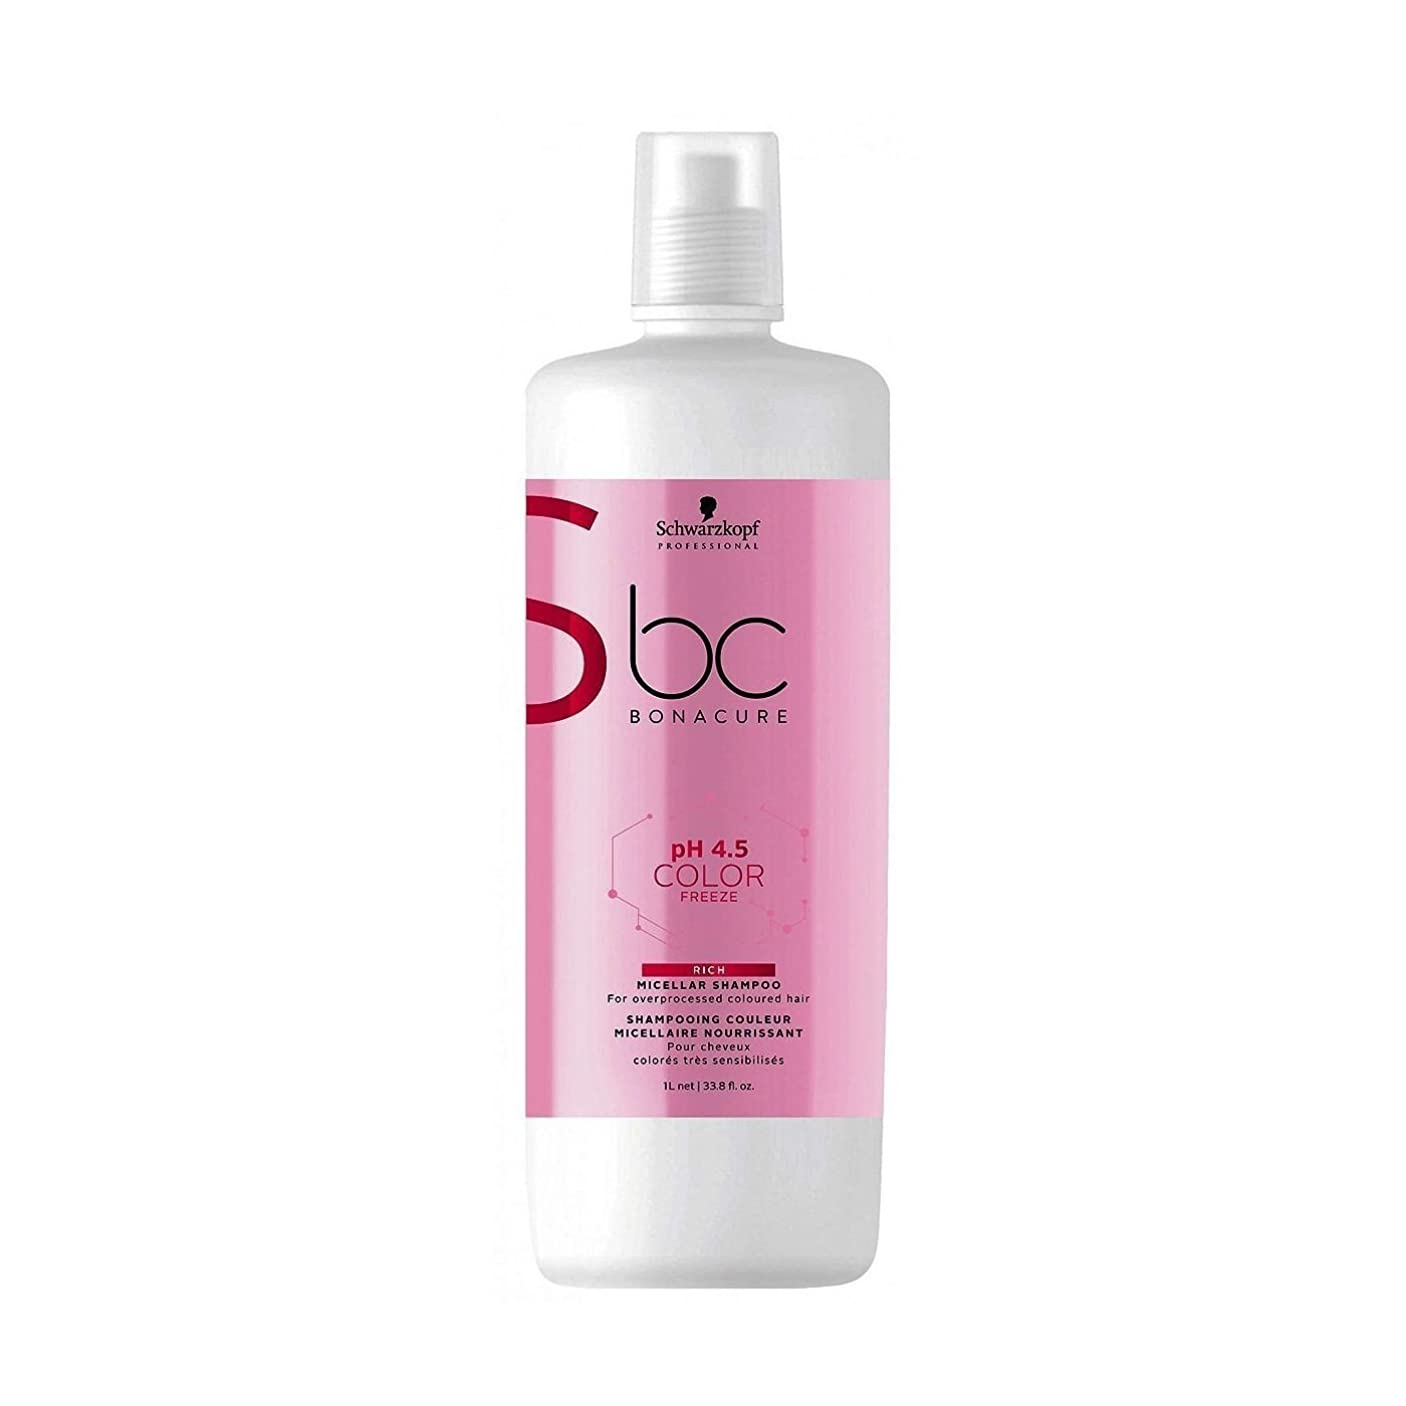 配置守る骨の折れるシュワルツコフ BC Bonacure pH 4.5 Color Freeze Rich Micellar Shampoo (For Overprocessed Coloured Hair) 1000ml/33.8oz並行輸入品